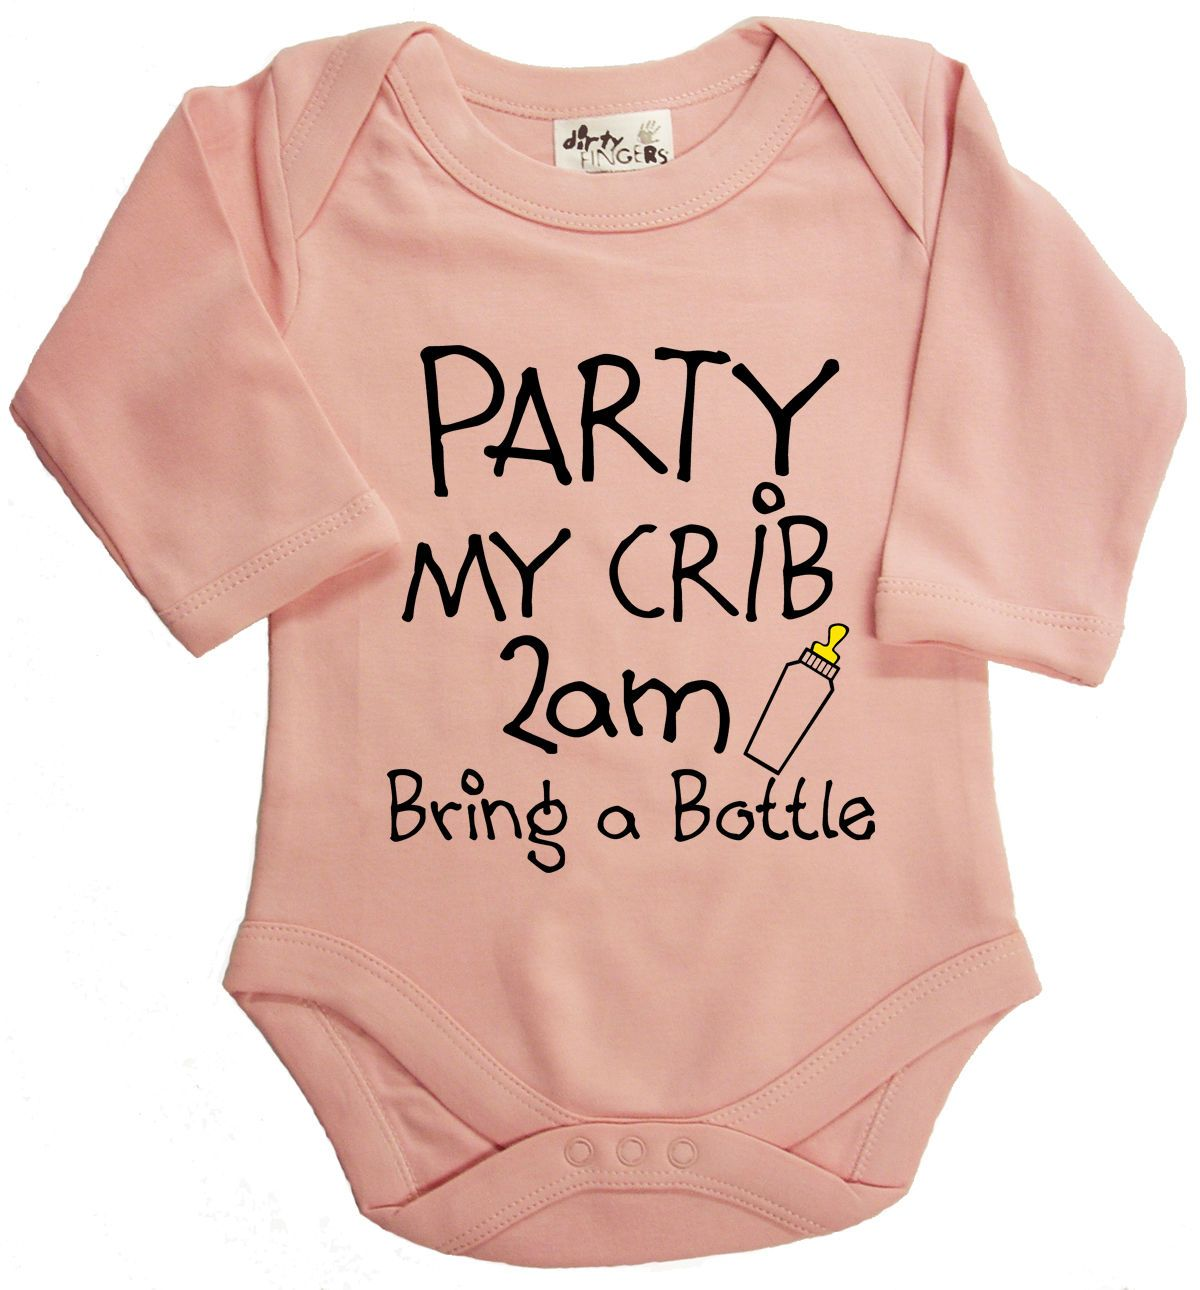 "Baby Bodysuit /""Party My Crib 2am bring a Bottle/"" Babygrow Vest Funny Gift"